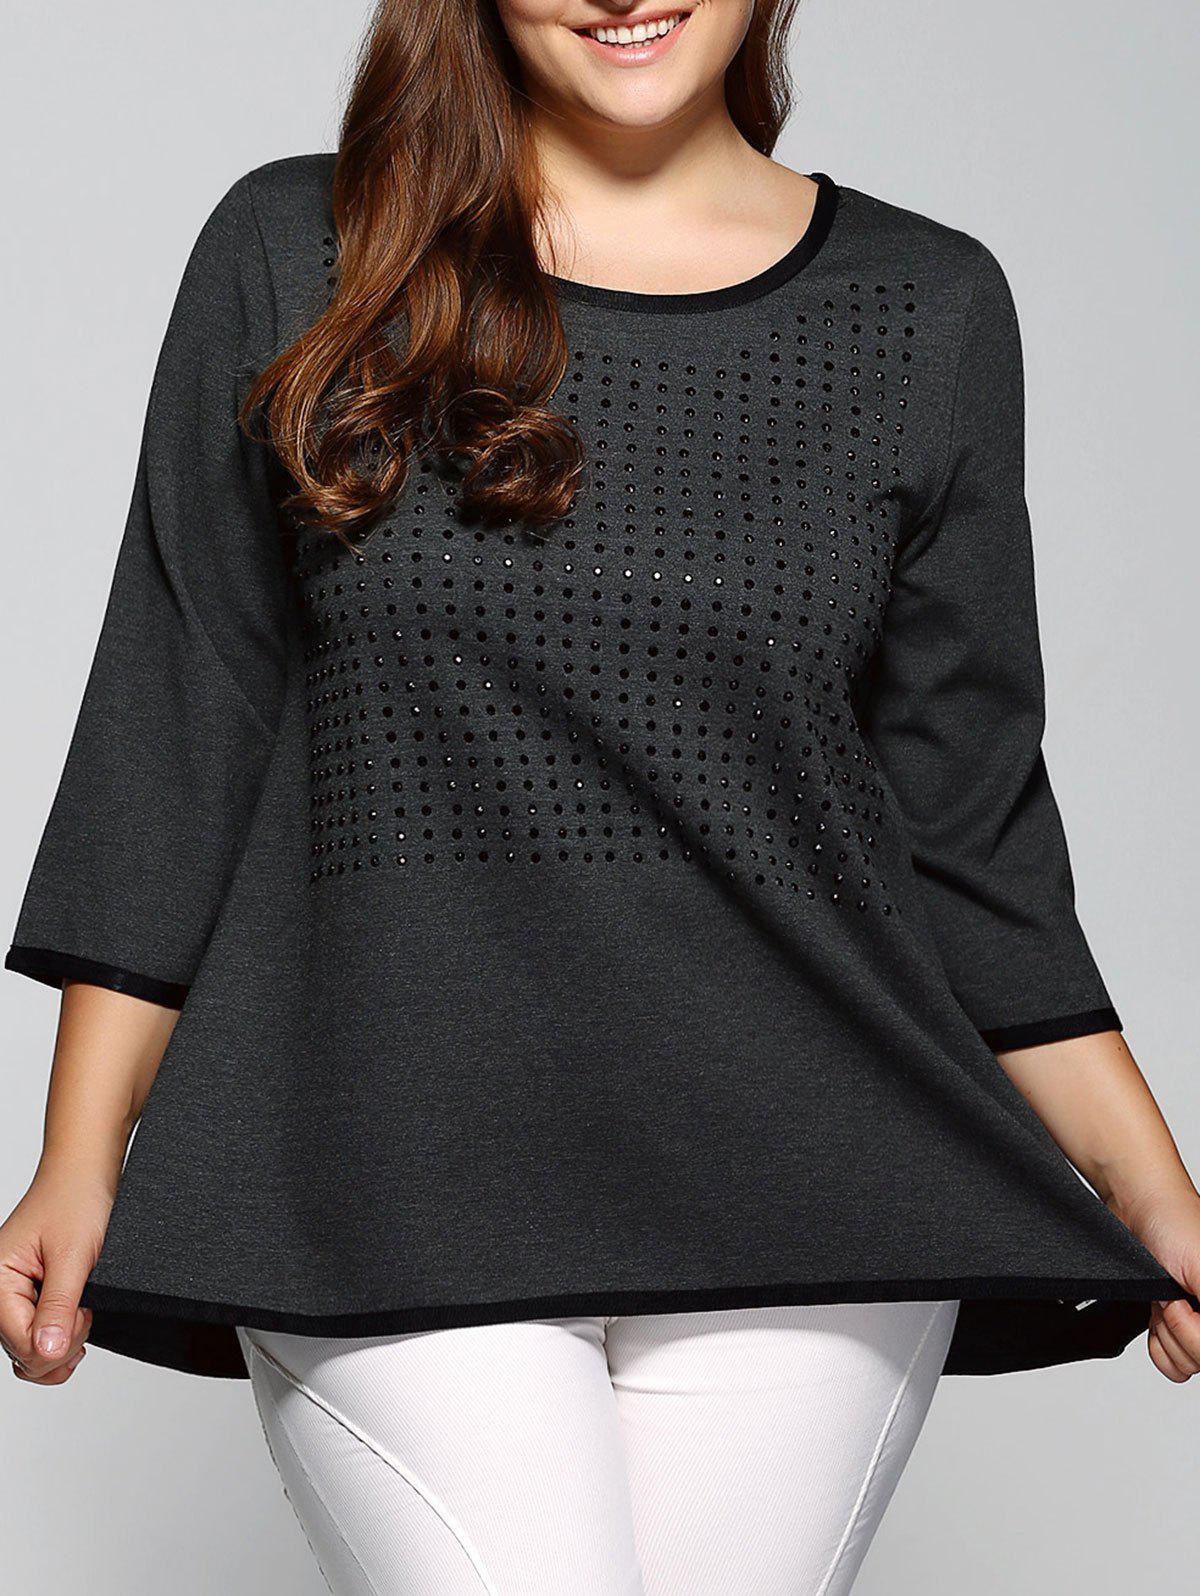 3/4 Sleeve Rhinestoned Loose Blouse - GRAY 3XL